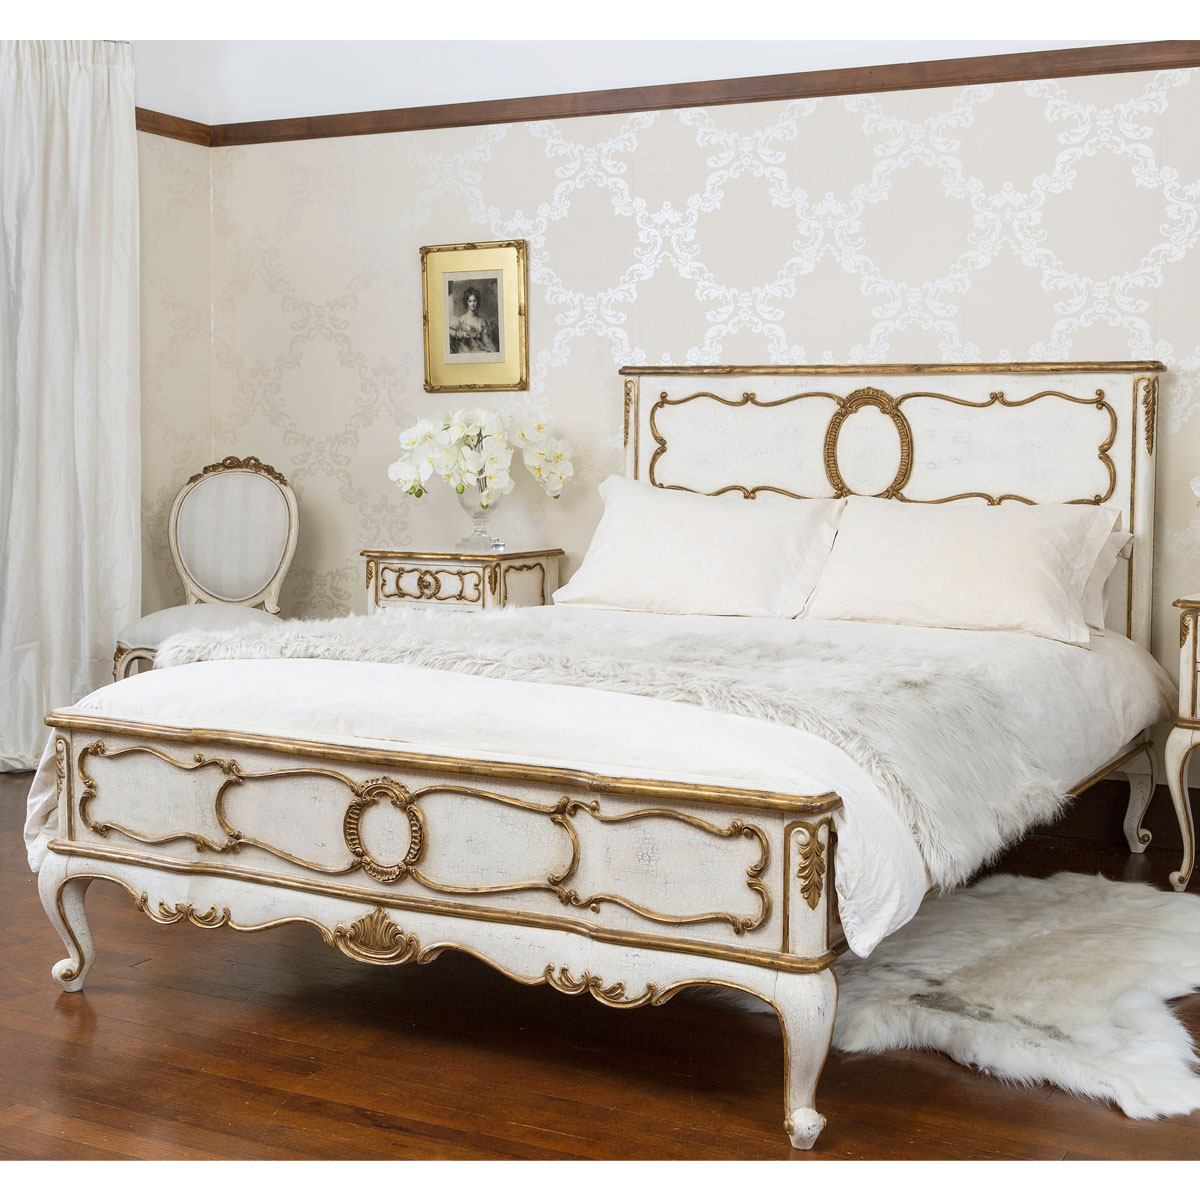 wardrobe and carved gold leaf patinas bedroom furniture stores bed mattress sale. Black Bedroom Furniture Sets. Home Design Ideas